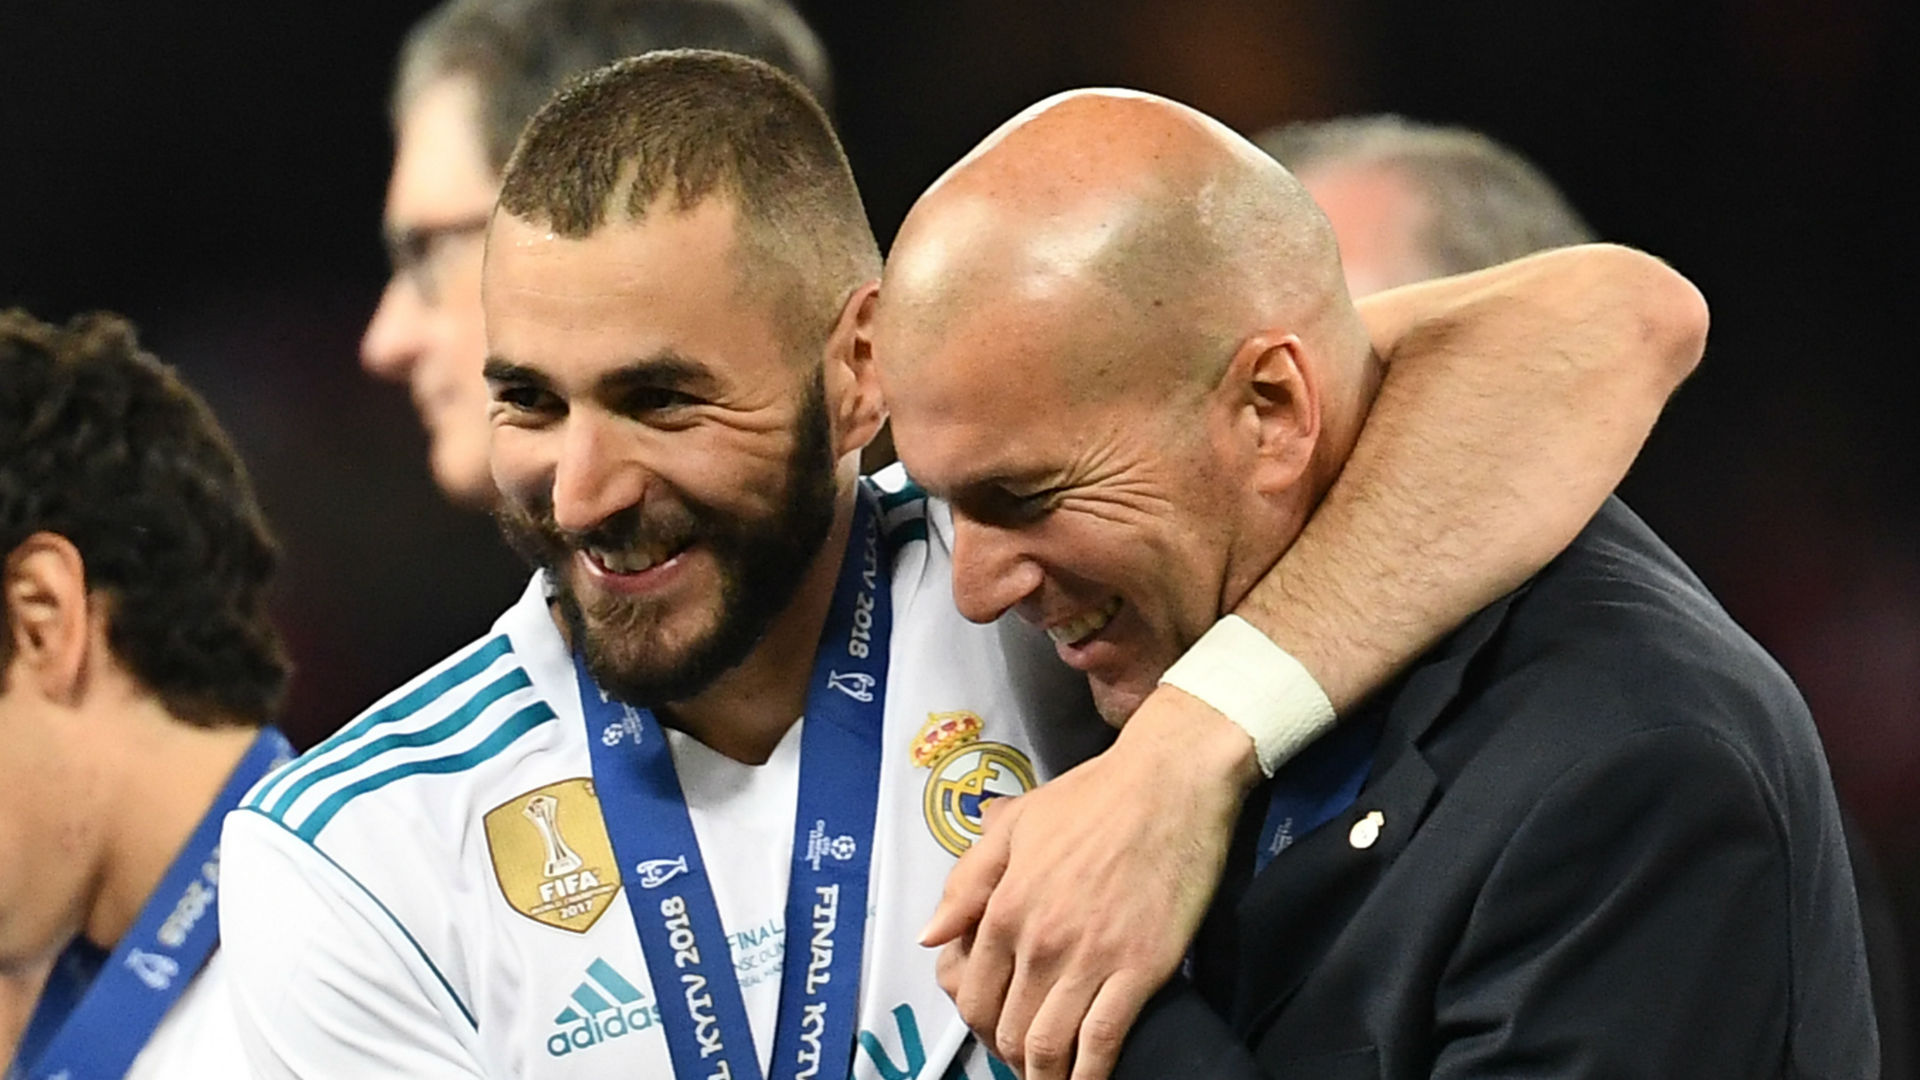 VIDEO - Les fans du Real Madrid rendent hommage à Zidane et Benzema